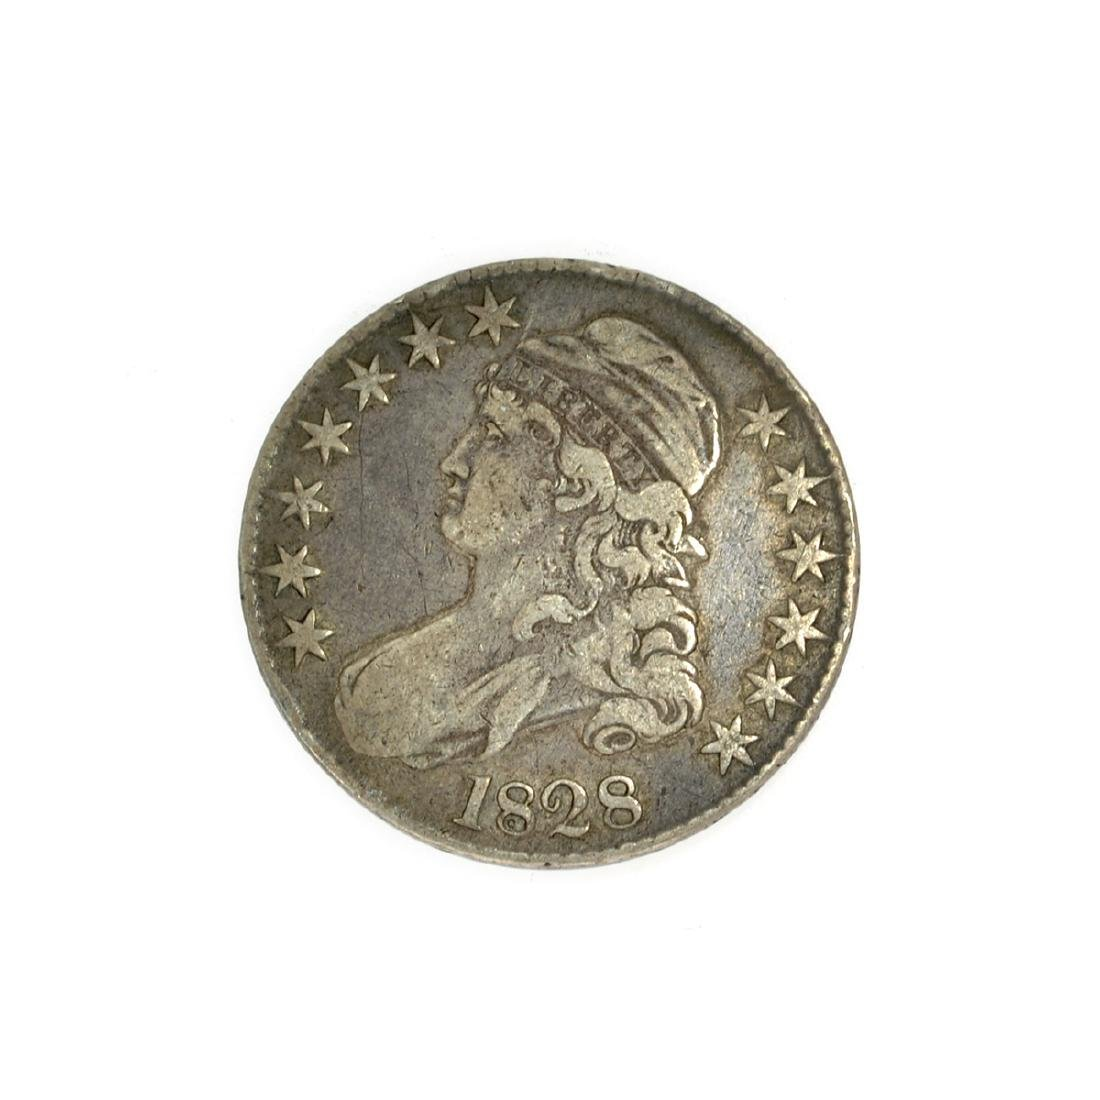 Rare 1828 Capped Bust Half Dollar Coin